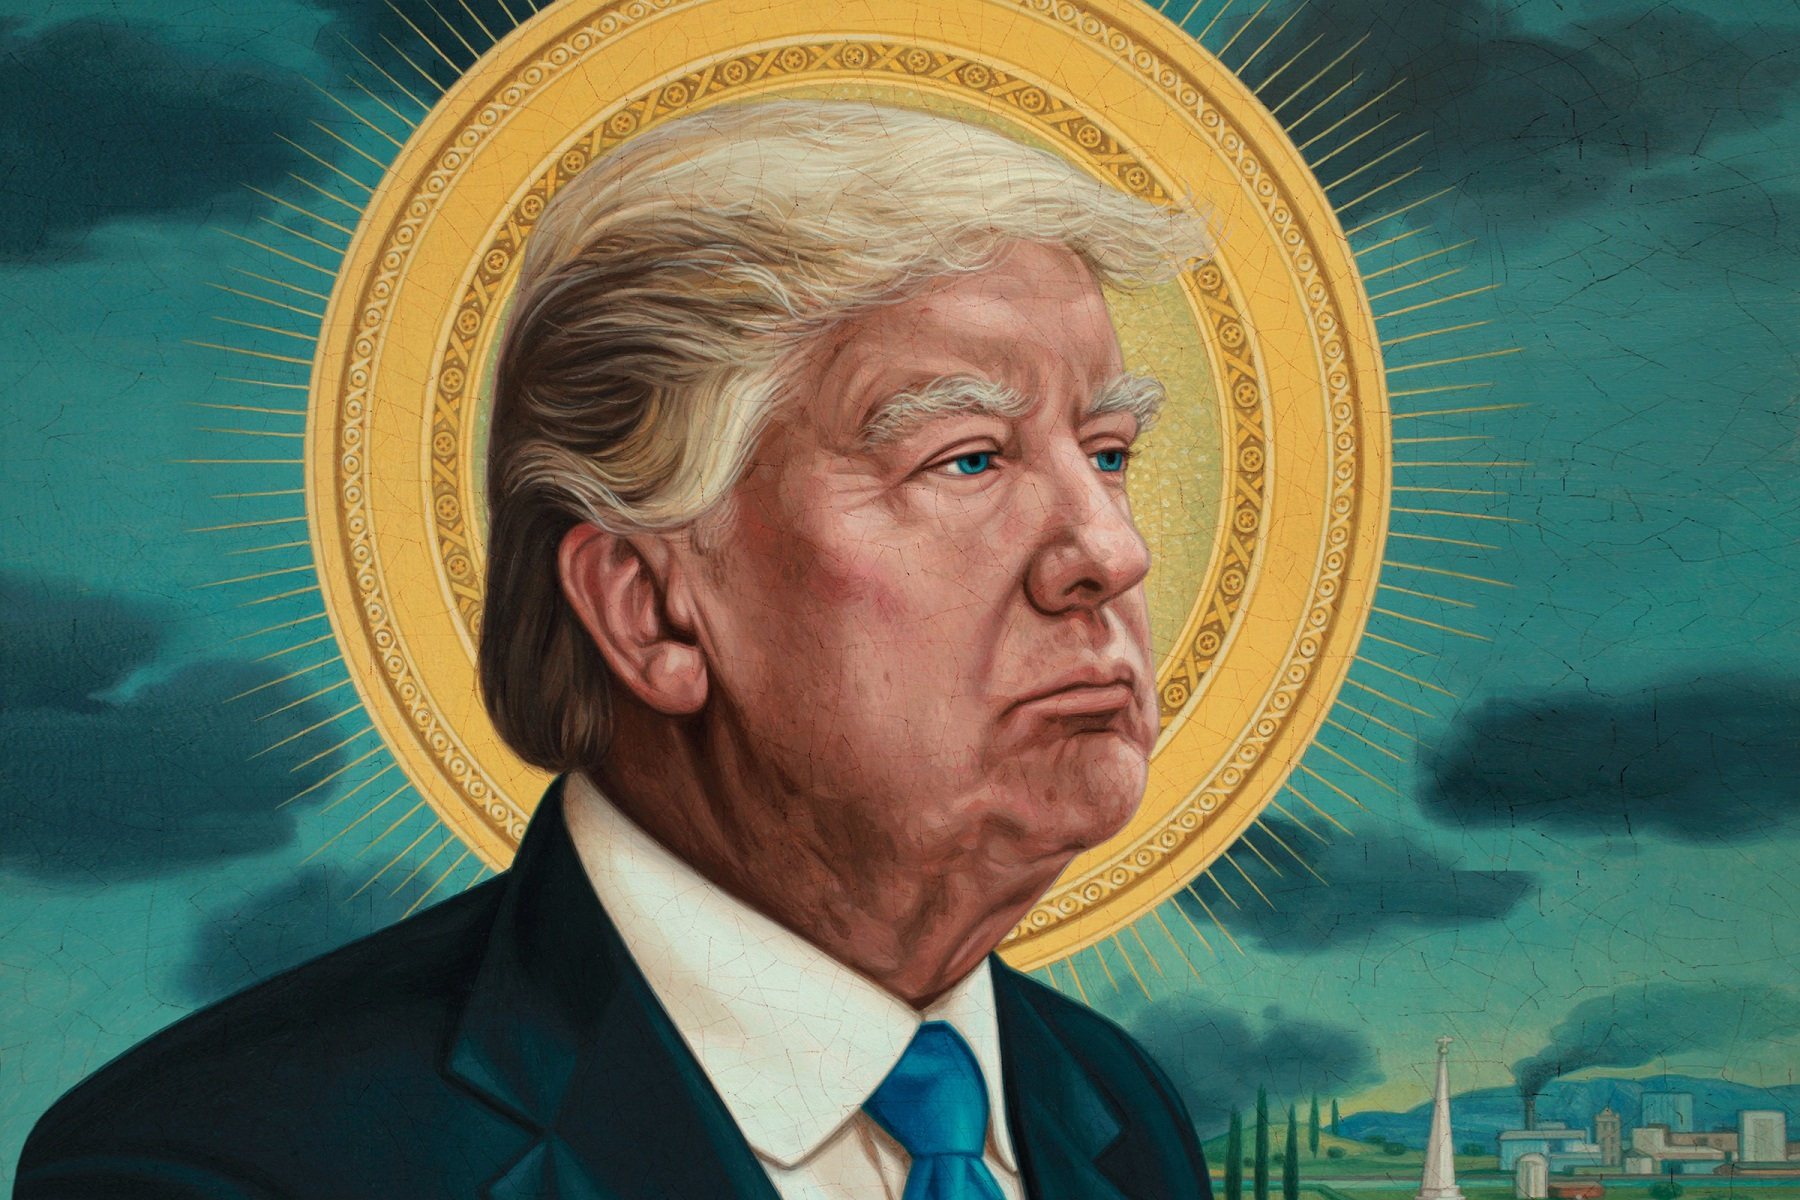 trump false idol, christian right, antichrist trump